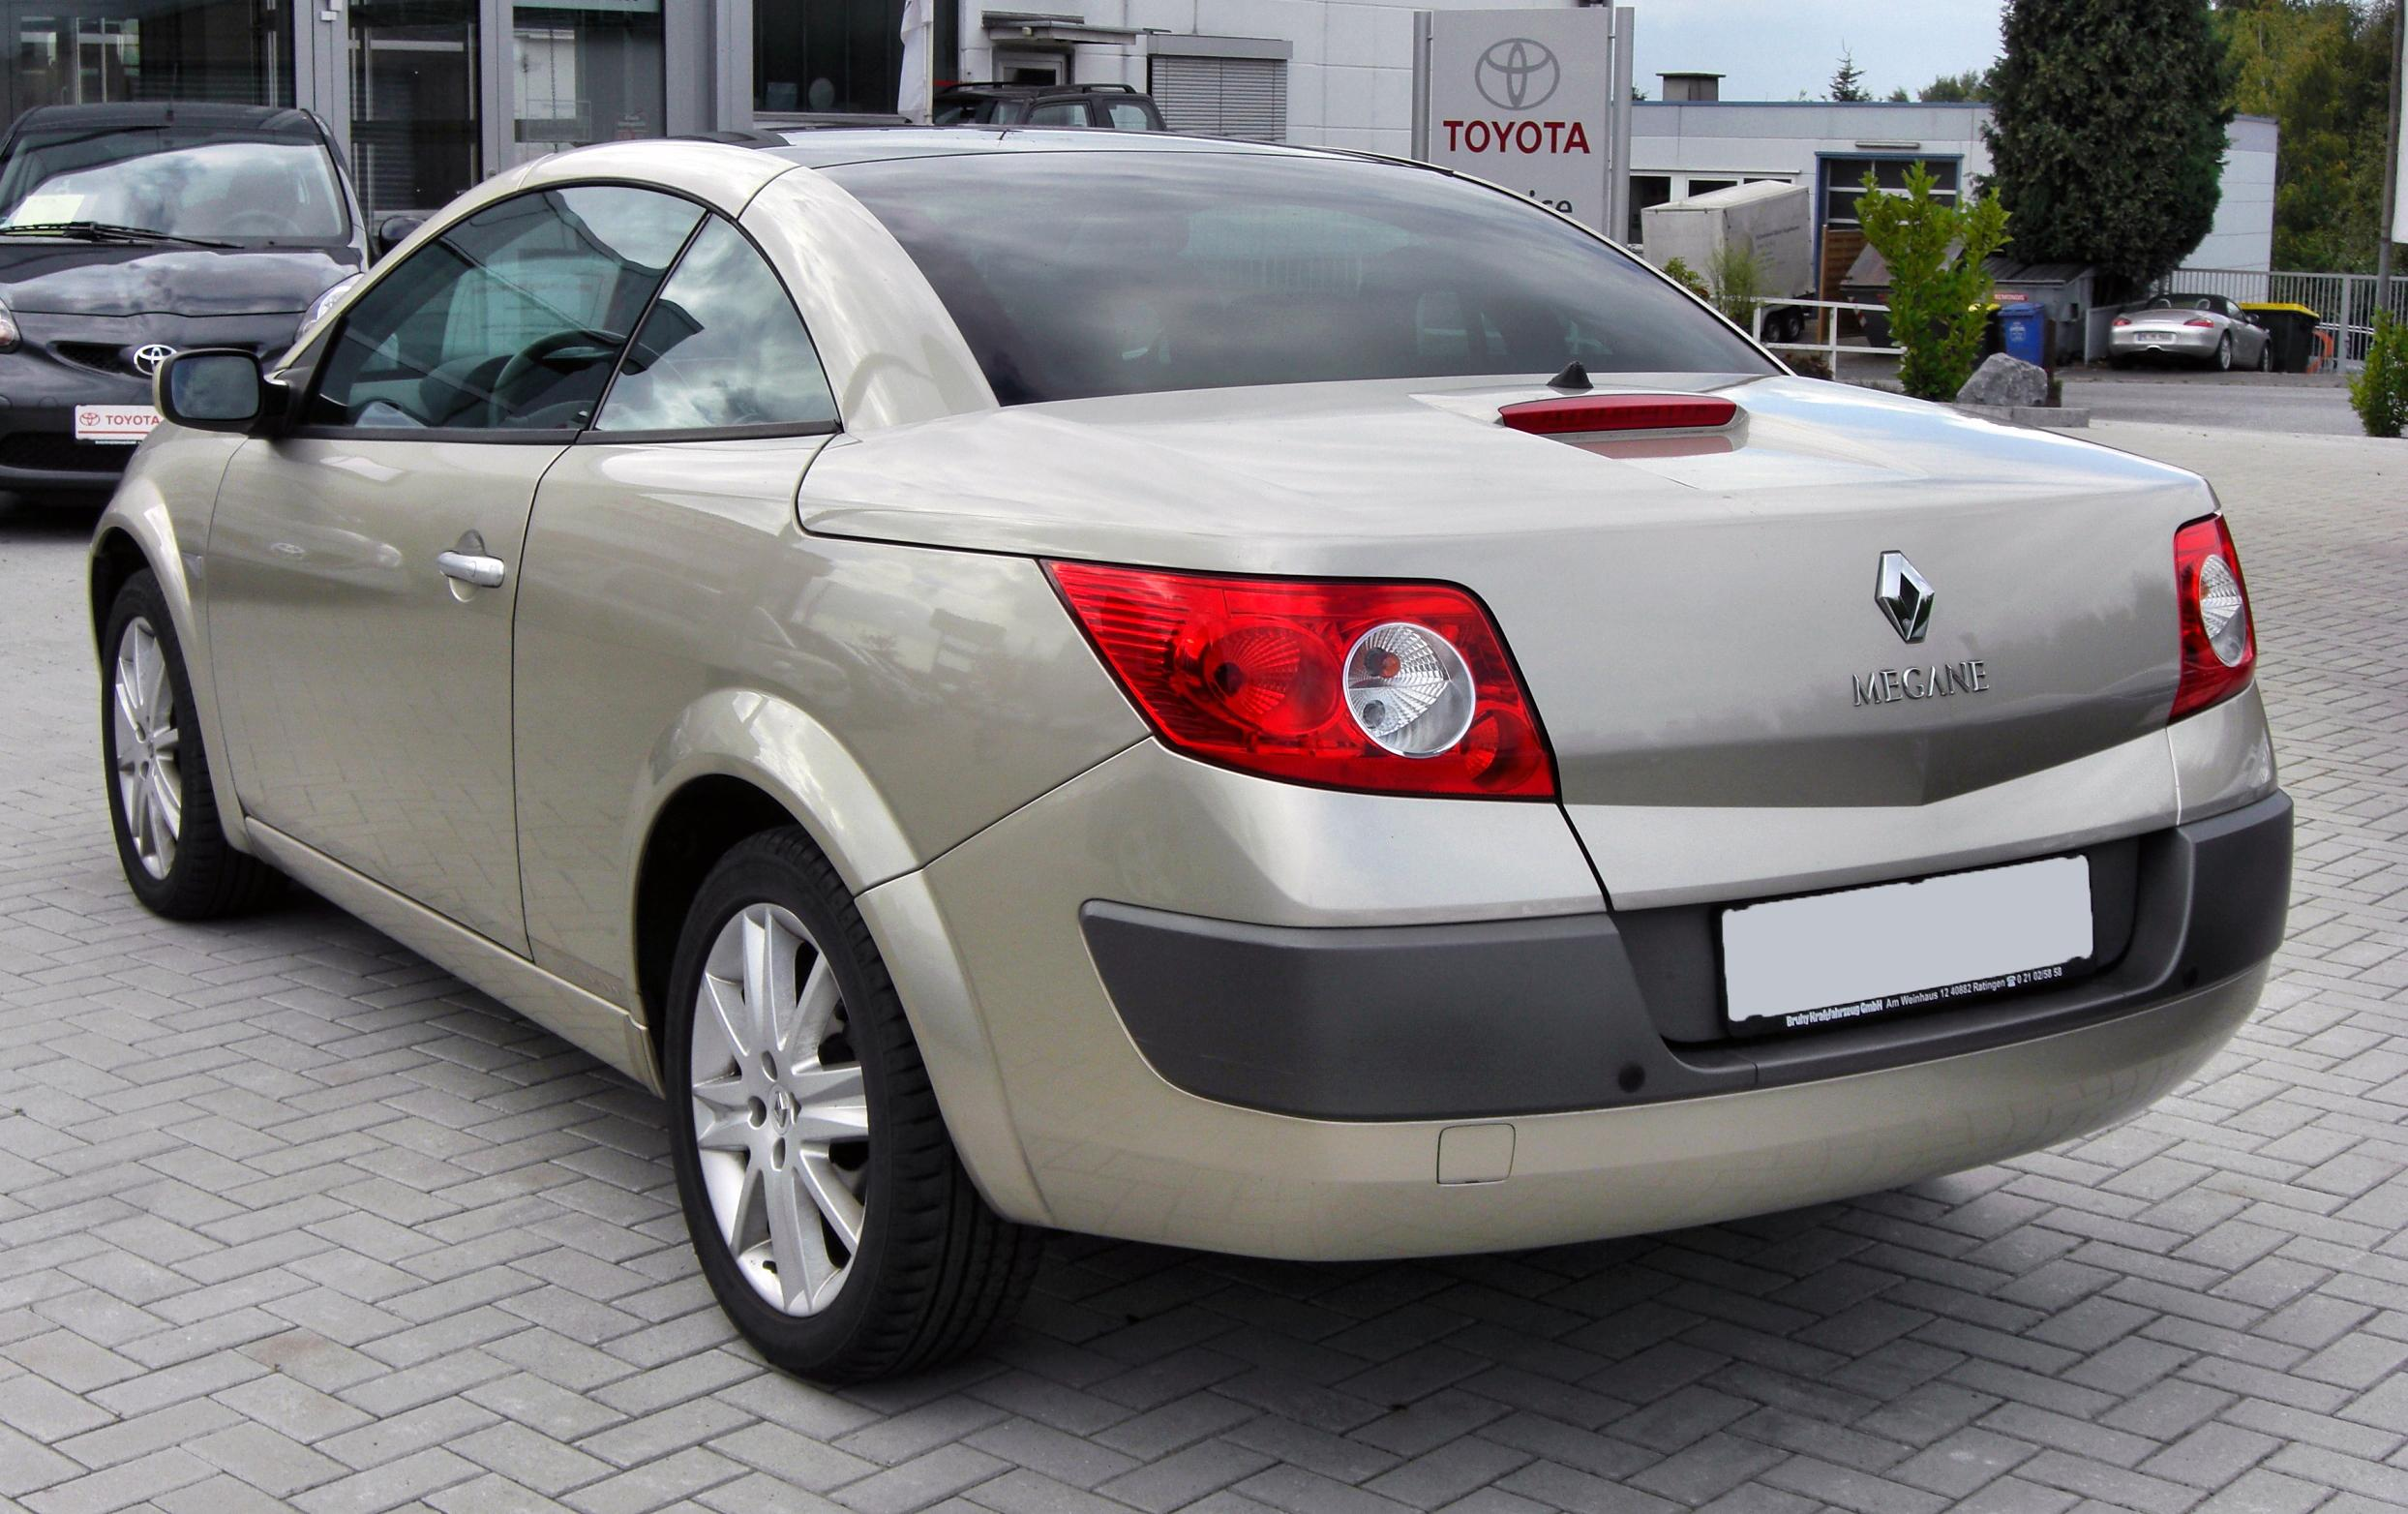 renault megane cc technical details history photos on better parts ltd. Black Bedroom Furniture Sets. Home Design Ideas